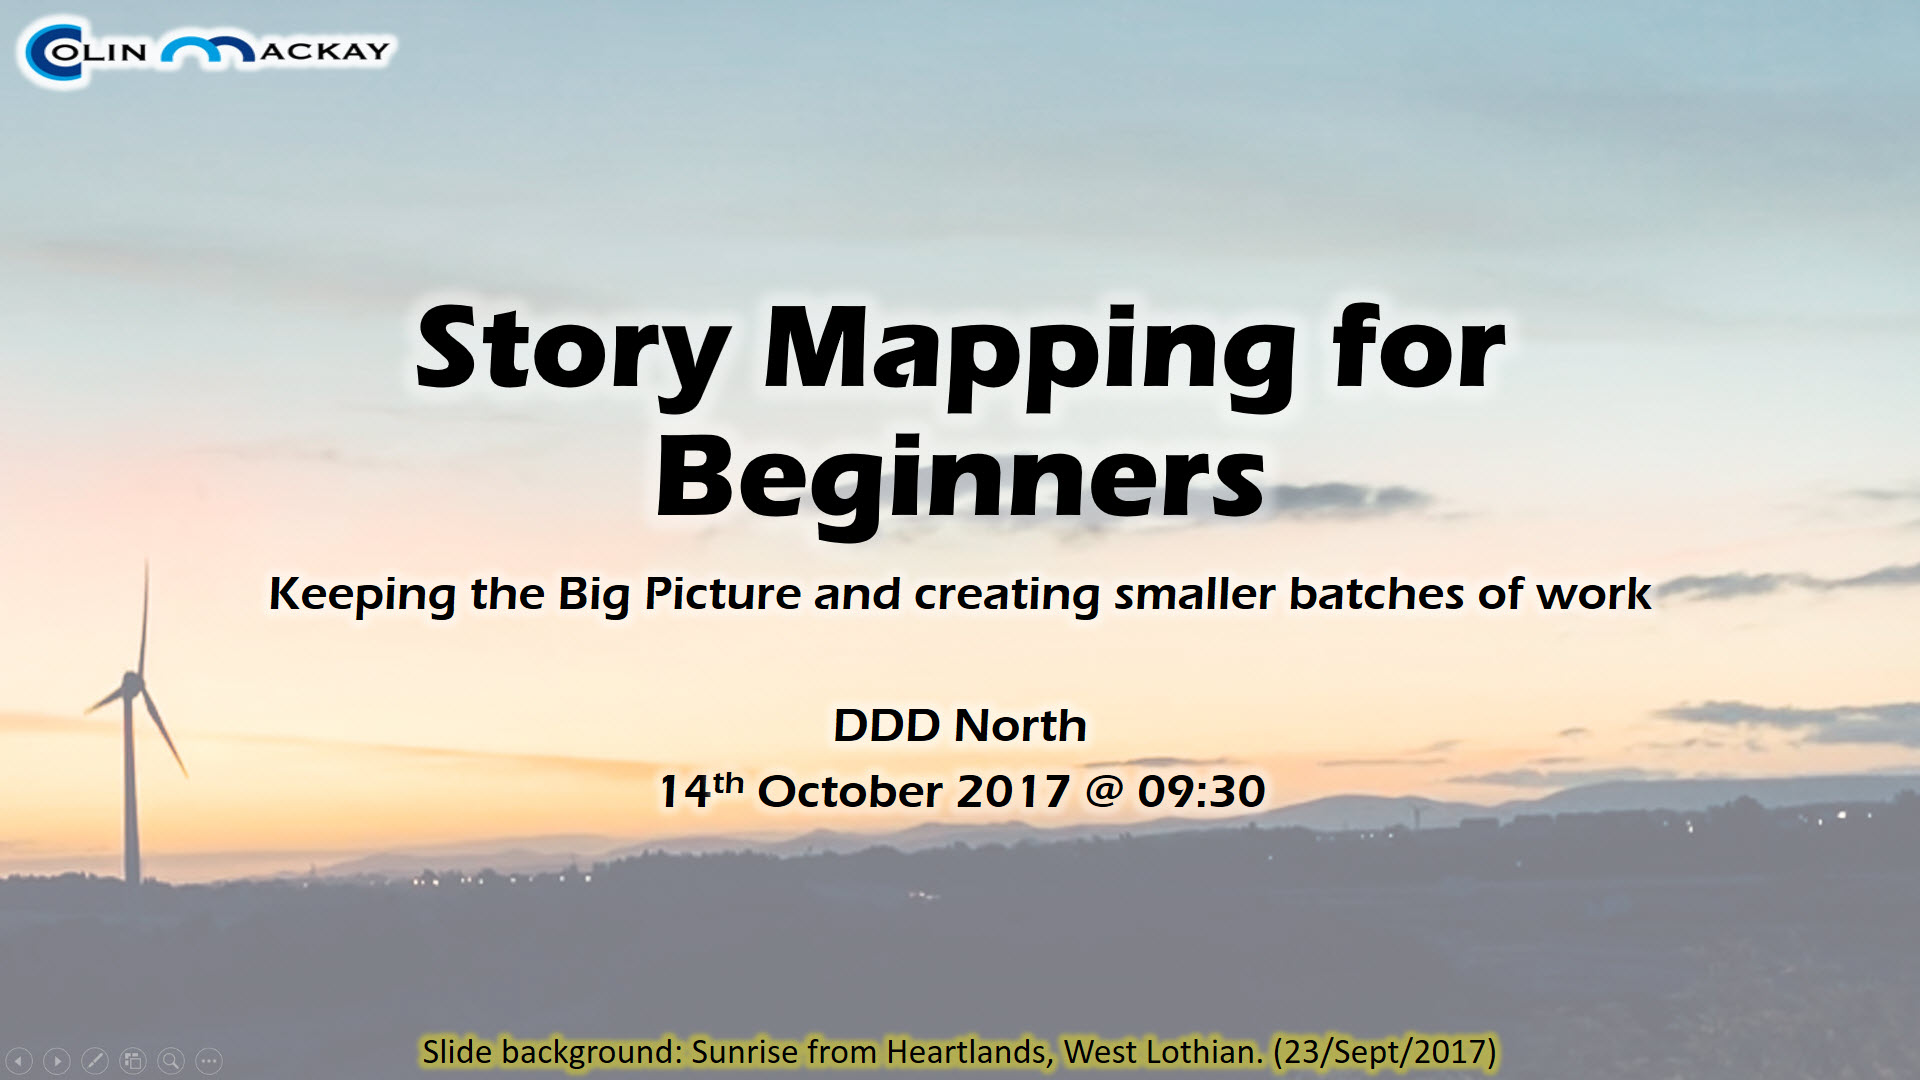 Storymapping for Beginners - Welcome Slide